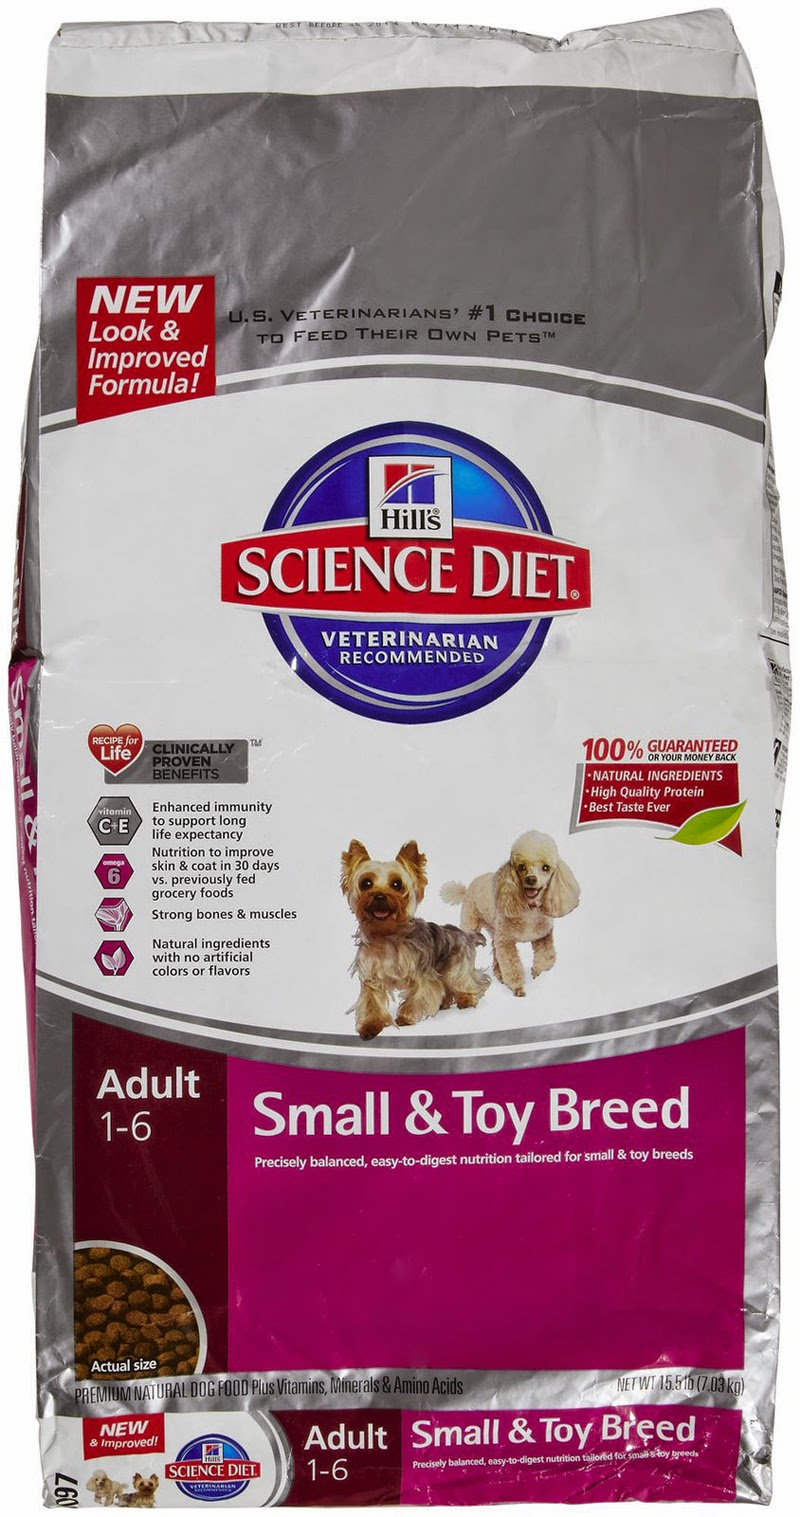 Science Diet Healthy Advantage Puppy Large Breed Review